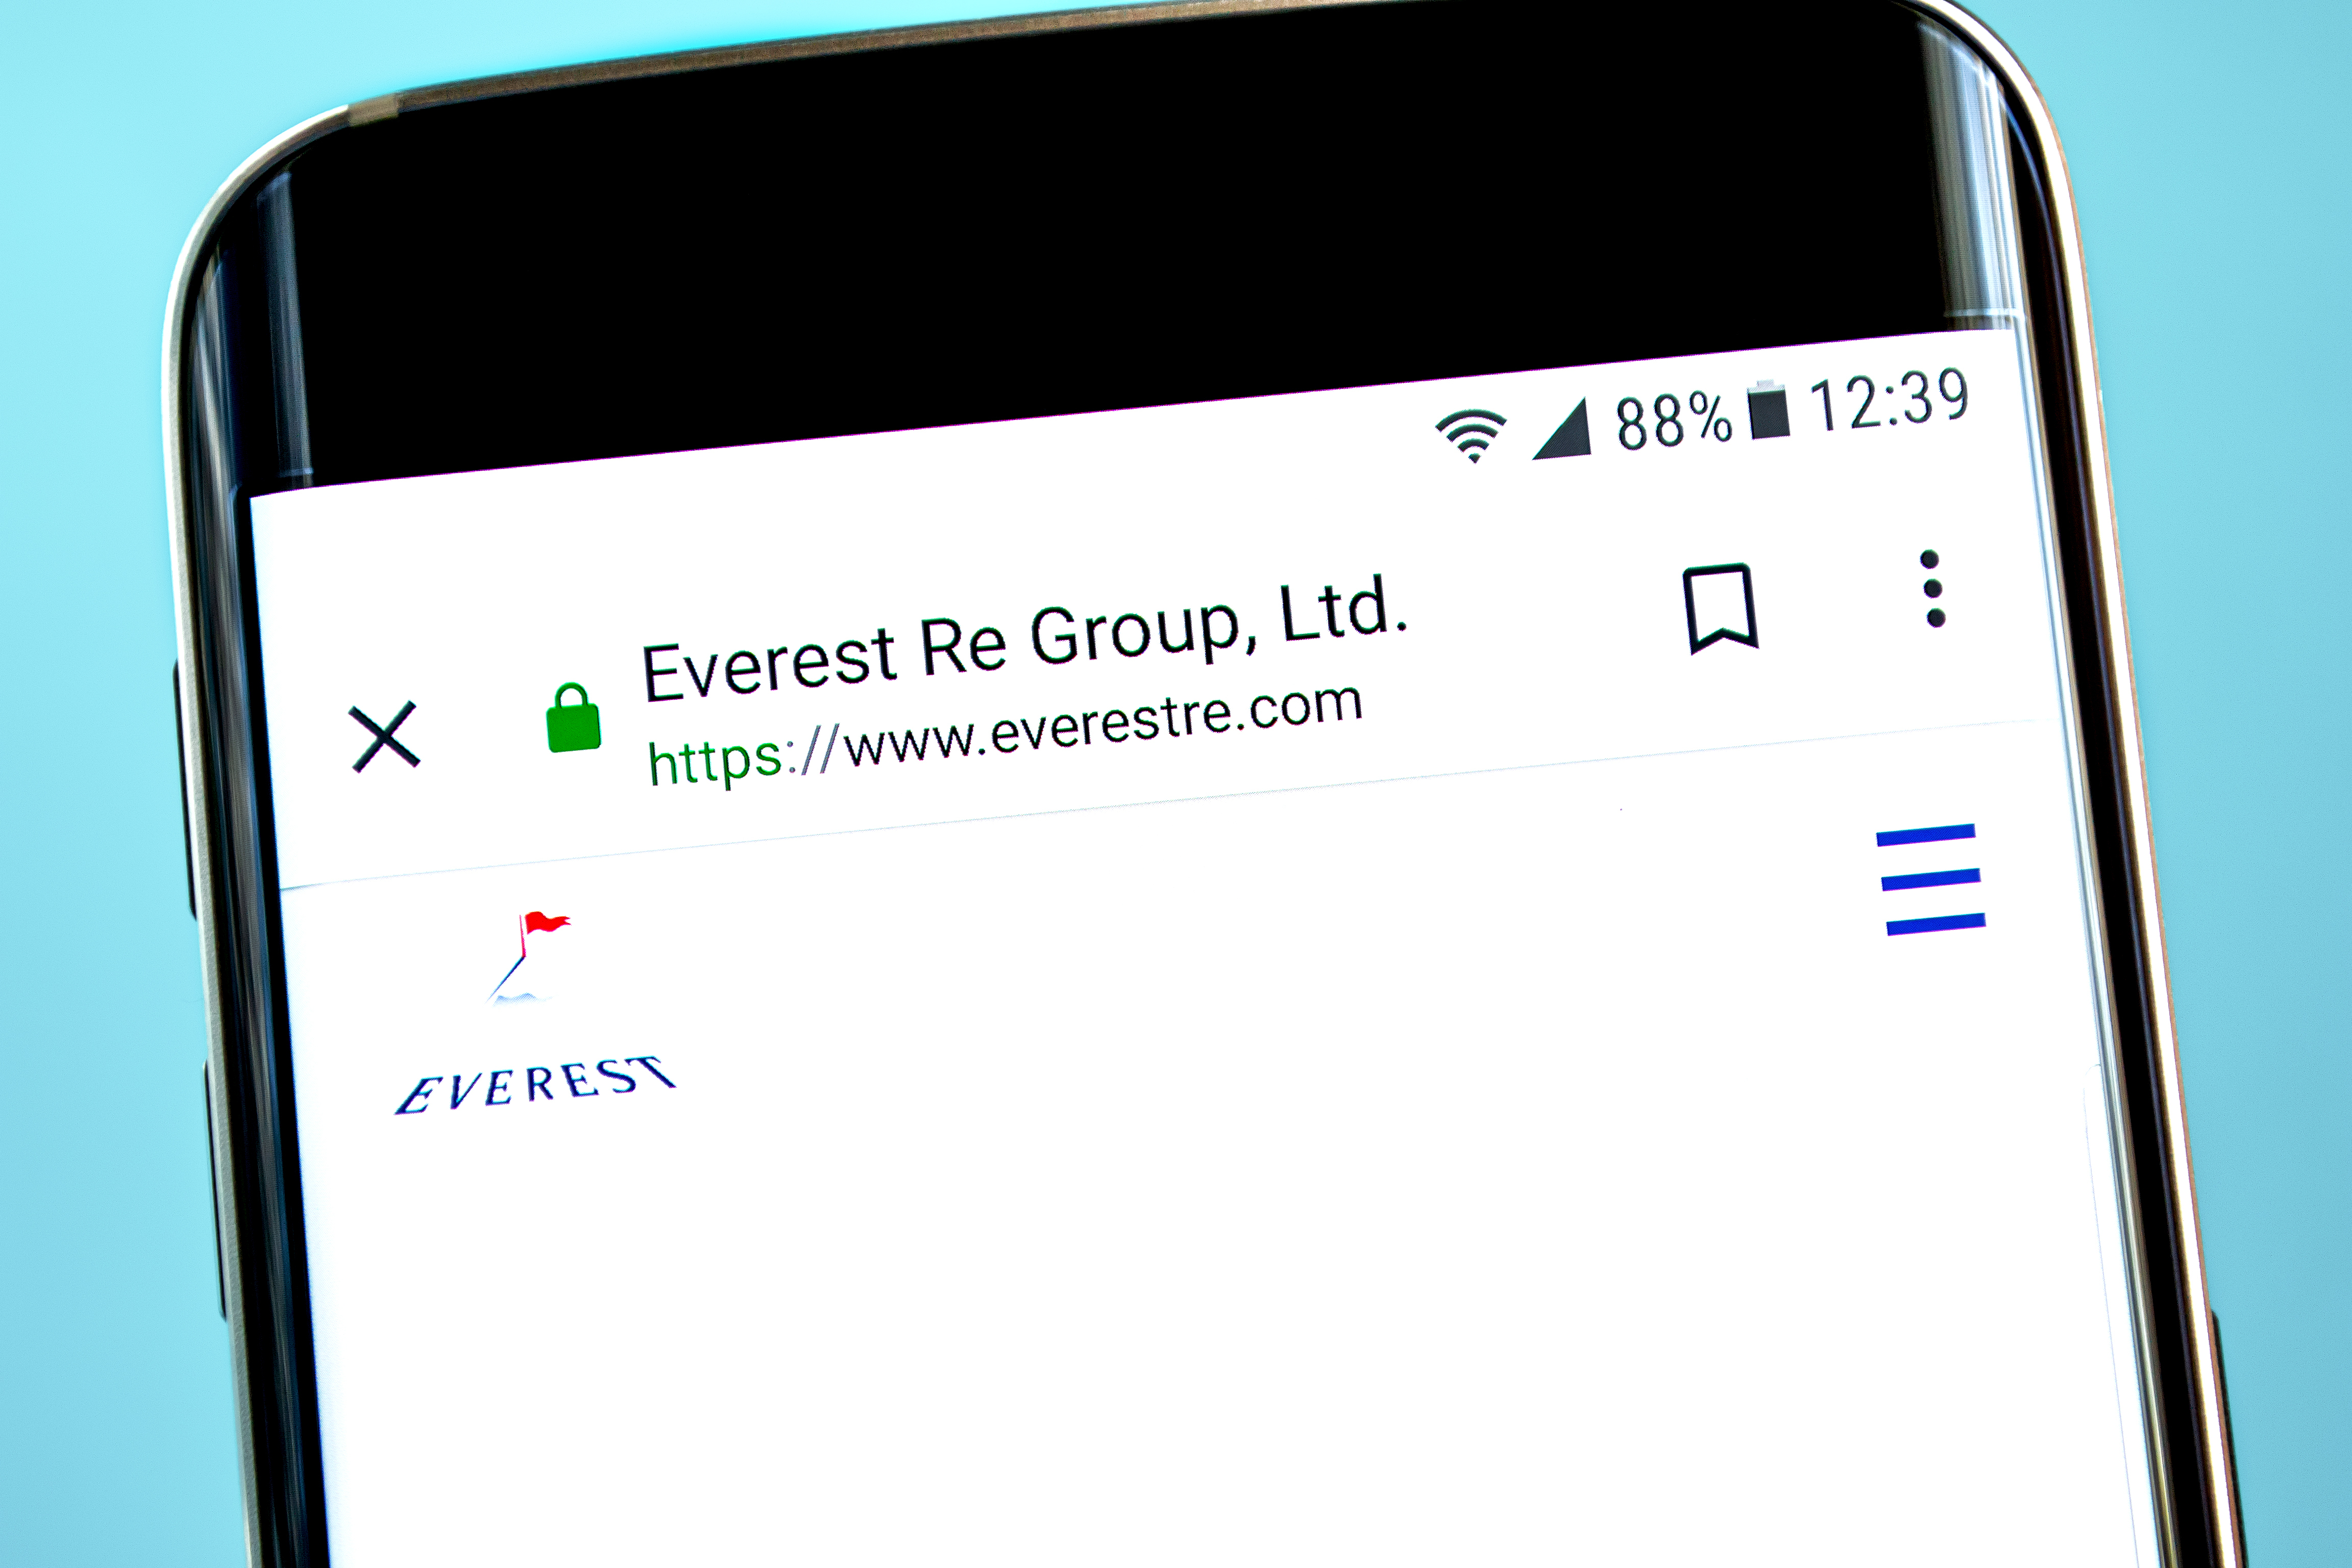 Everest Re Hit With 150m In Losses From Pandemic Business Insurance